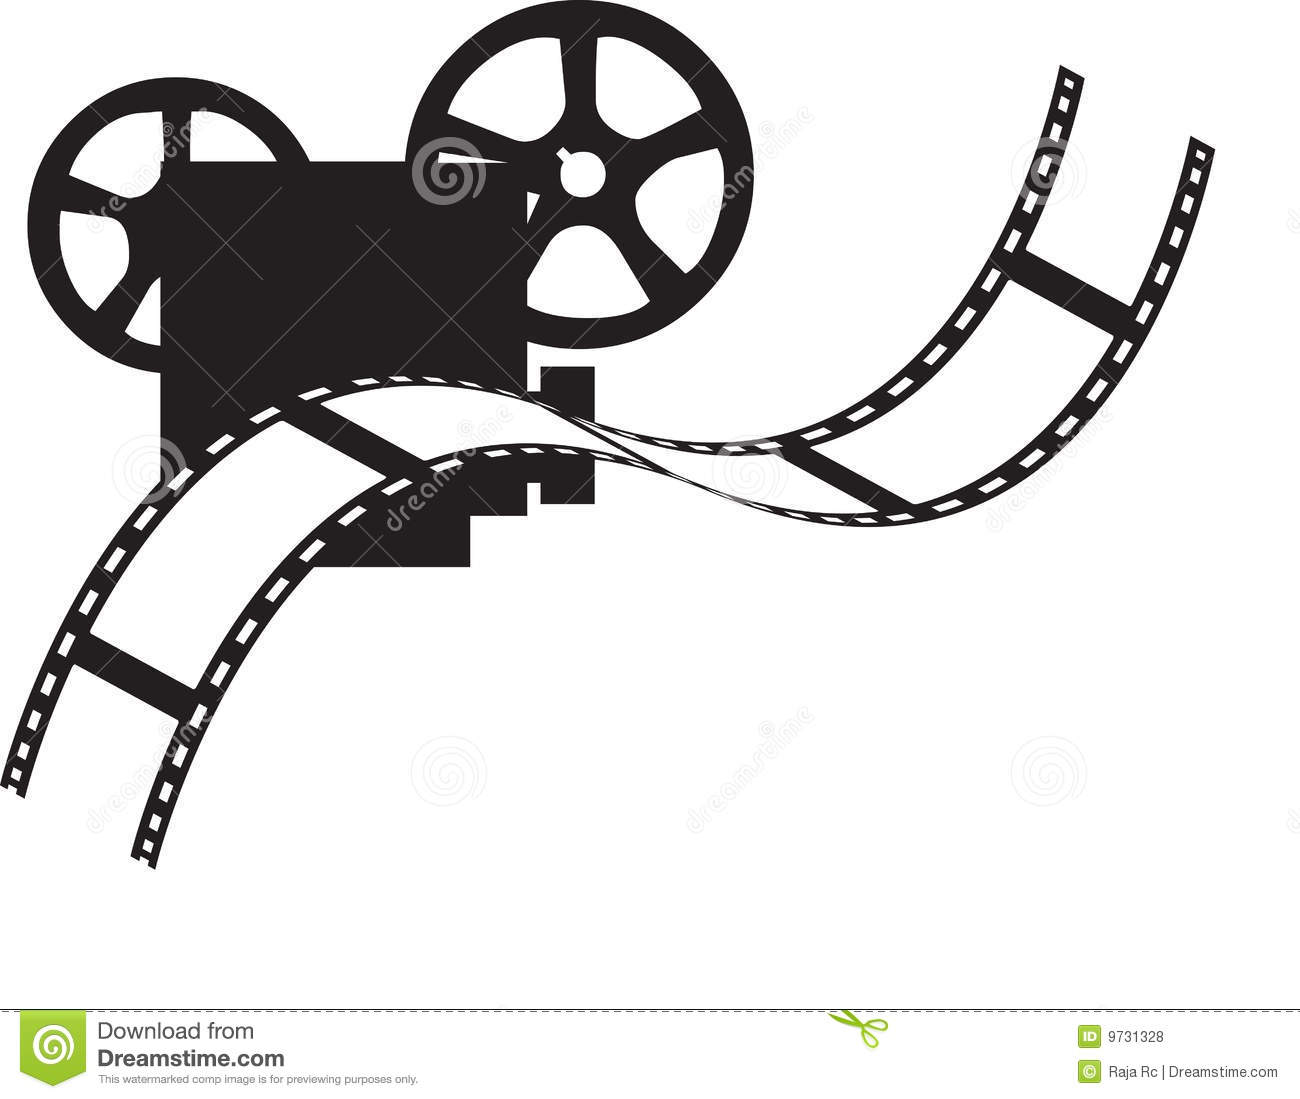 Movie Projector Stock Photo Image Of 35mm Photography